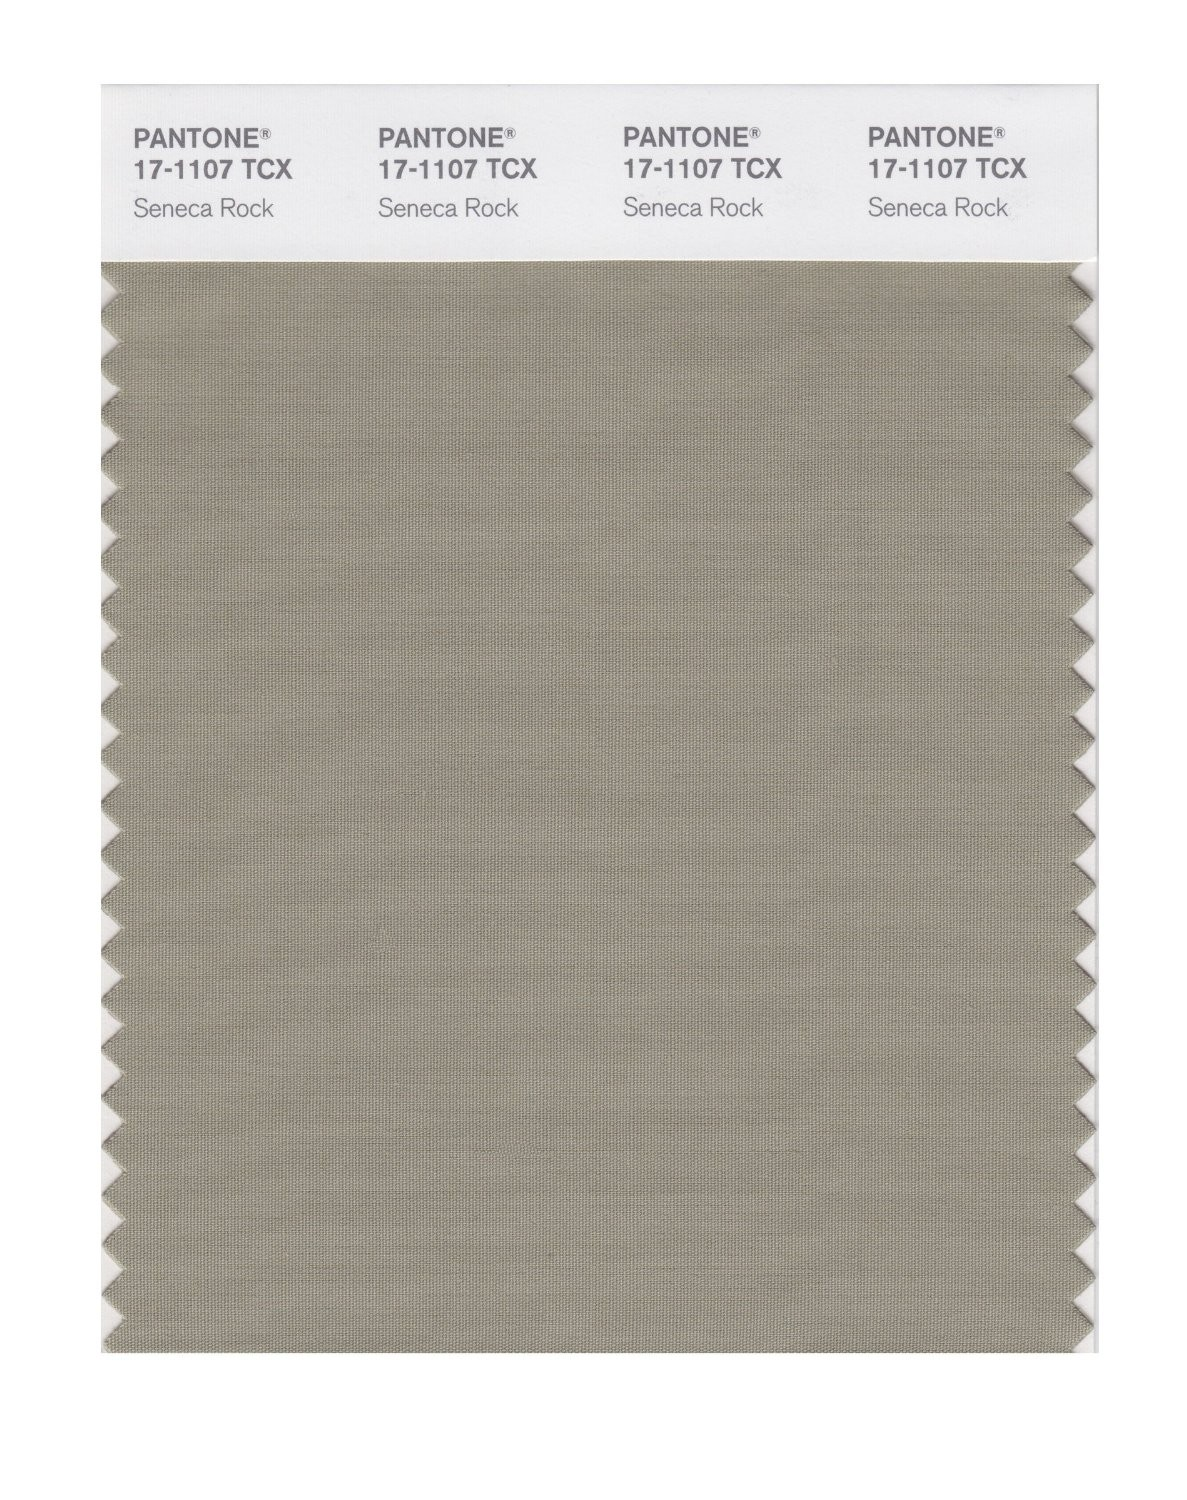 Pantone 17-1107 TCX Swatch Card Seneca Rock